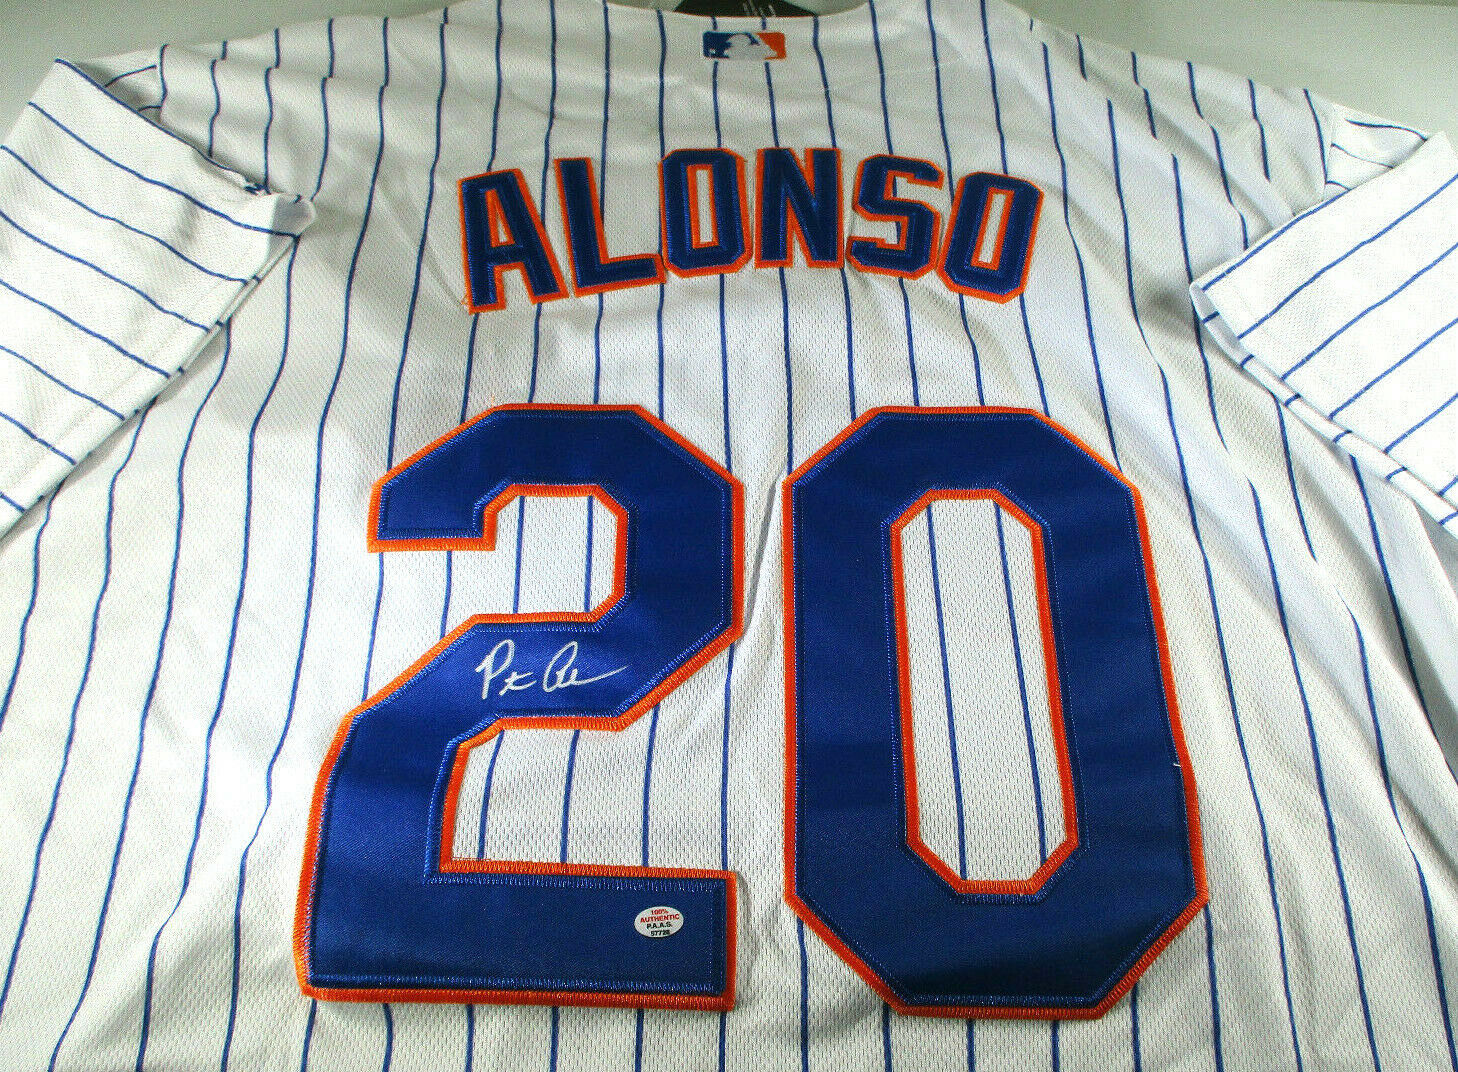 PETE ALONSO / NEW YORK METS / AUTOGRAPHED METS PRO STYLE BASEBALL JERSEY / COA